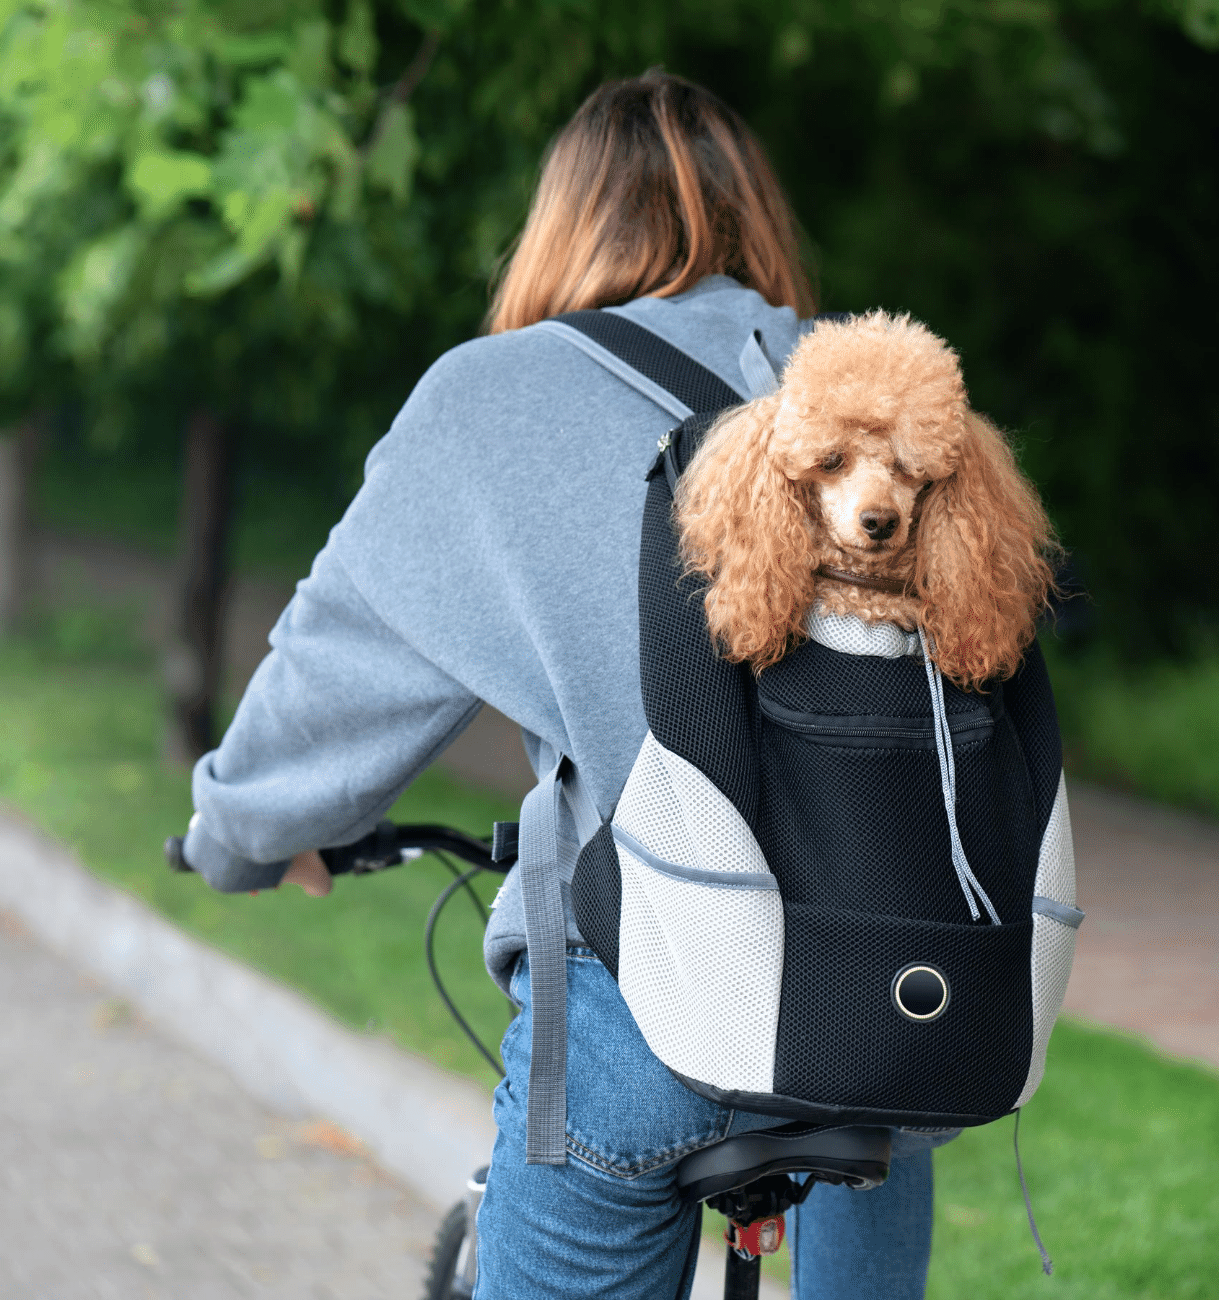 Dog is carried in backpack while travelling by bike.